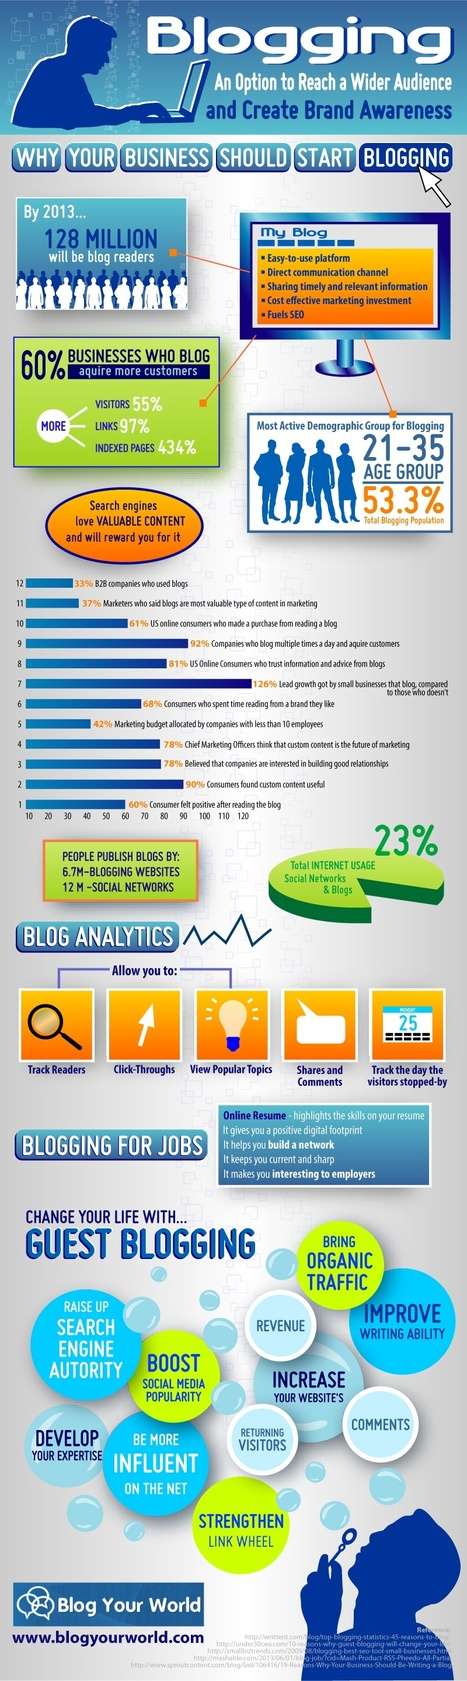 Why Your Business Should Start Blogging [INFOGRAPHIC]   Social Media Marketing   Scoop.it